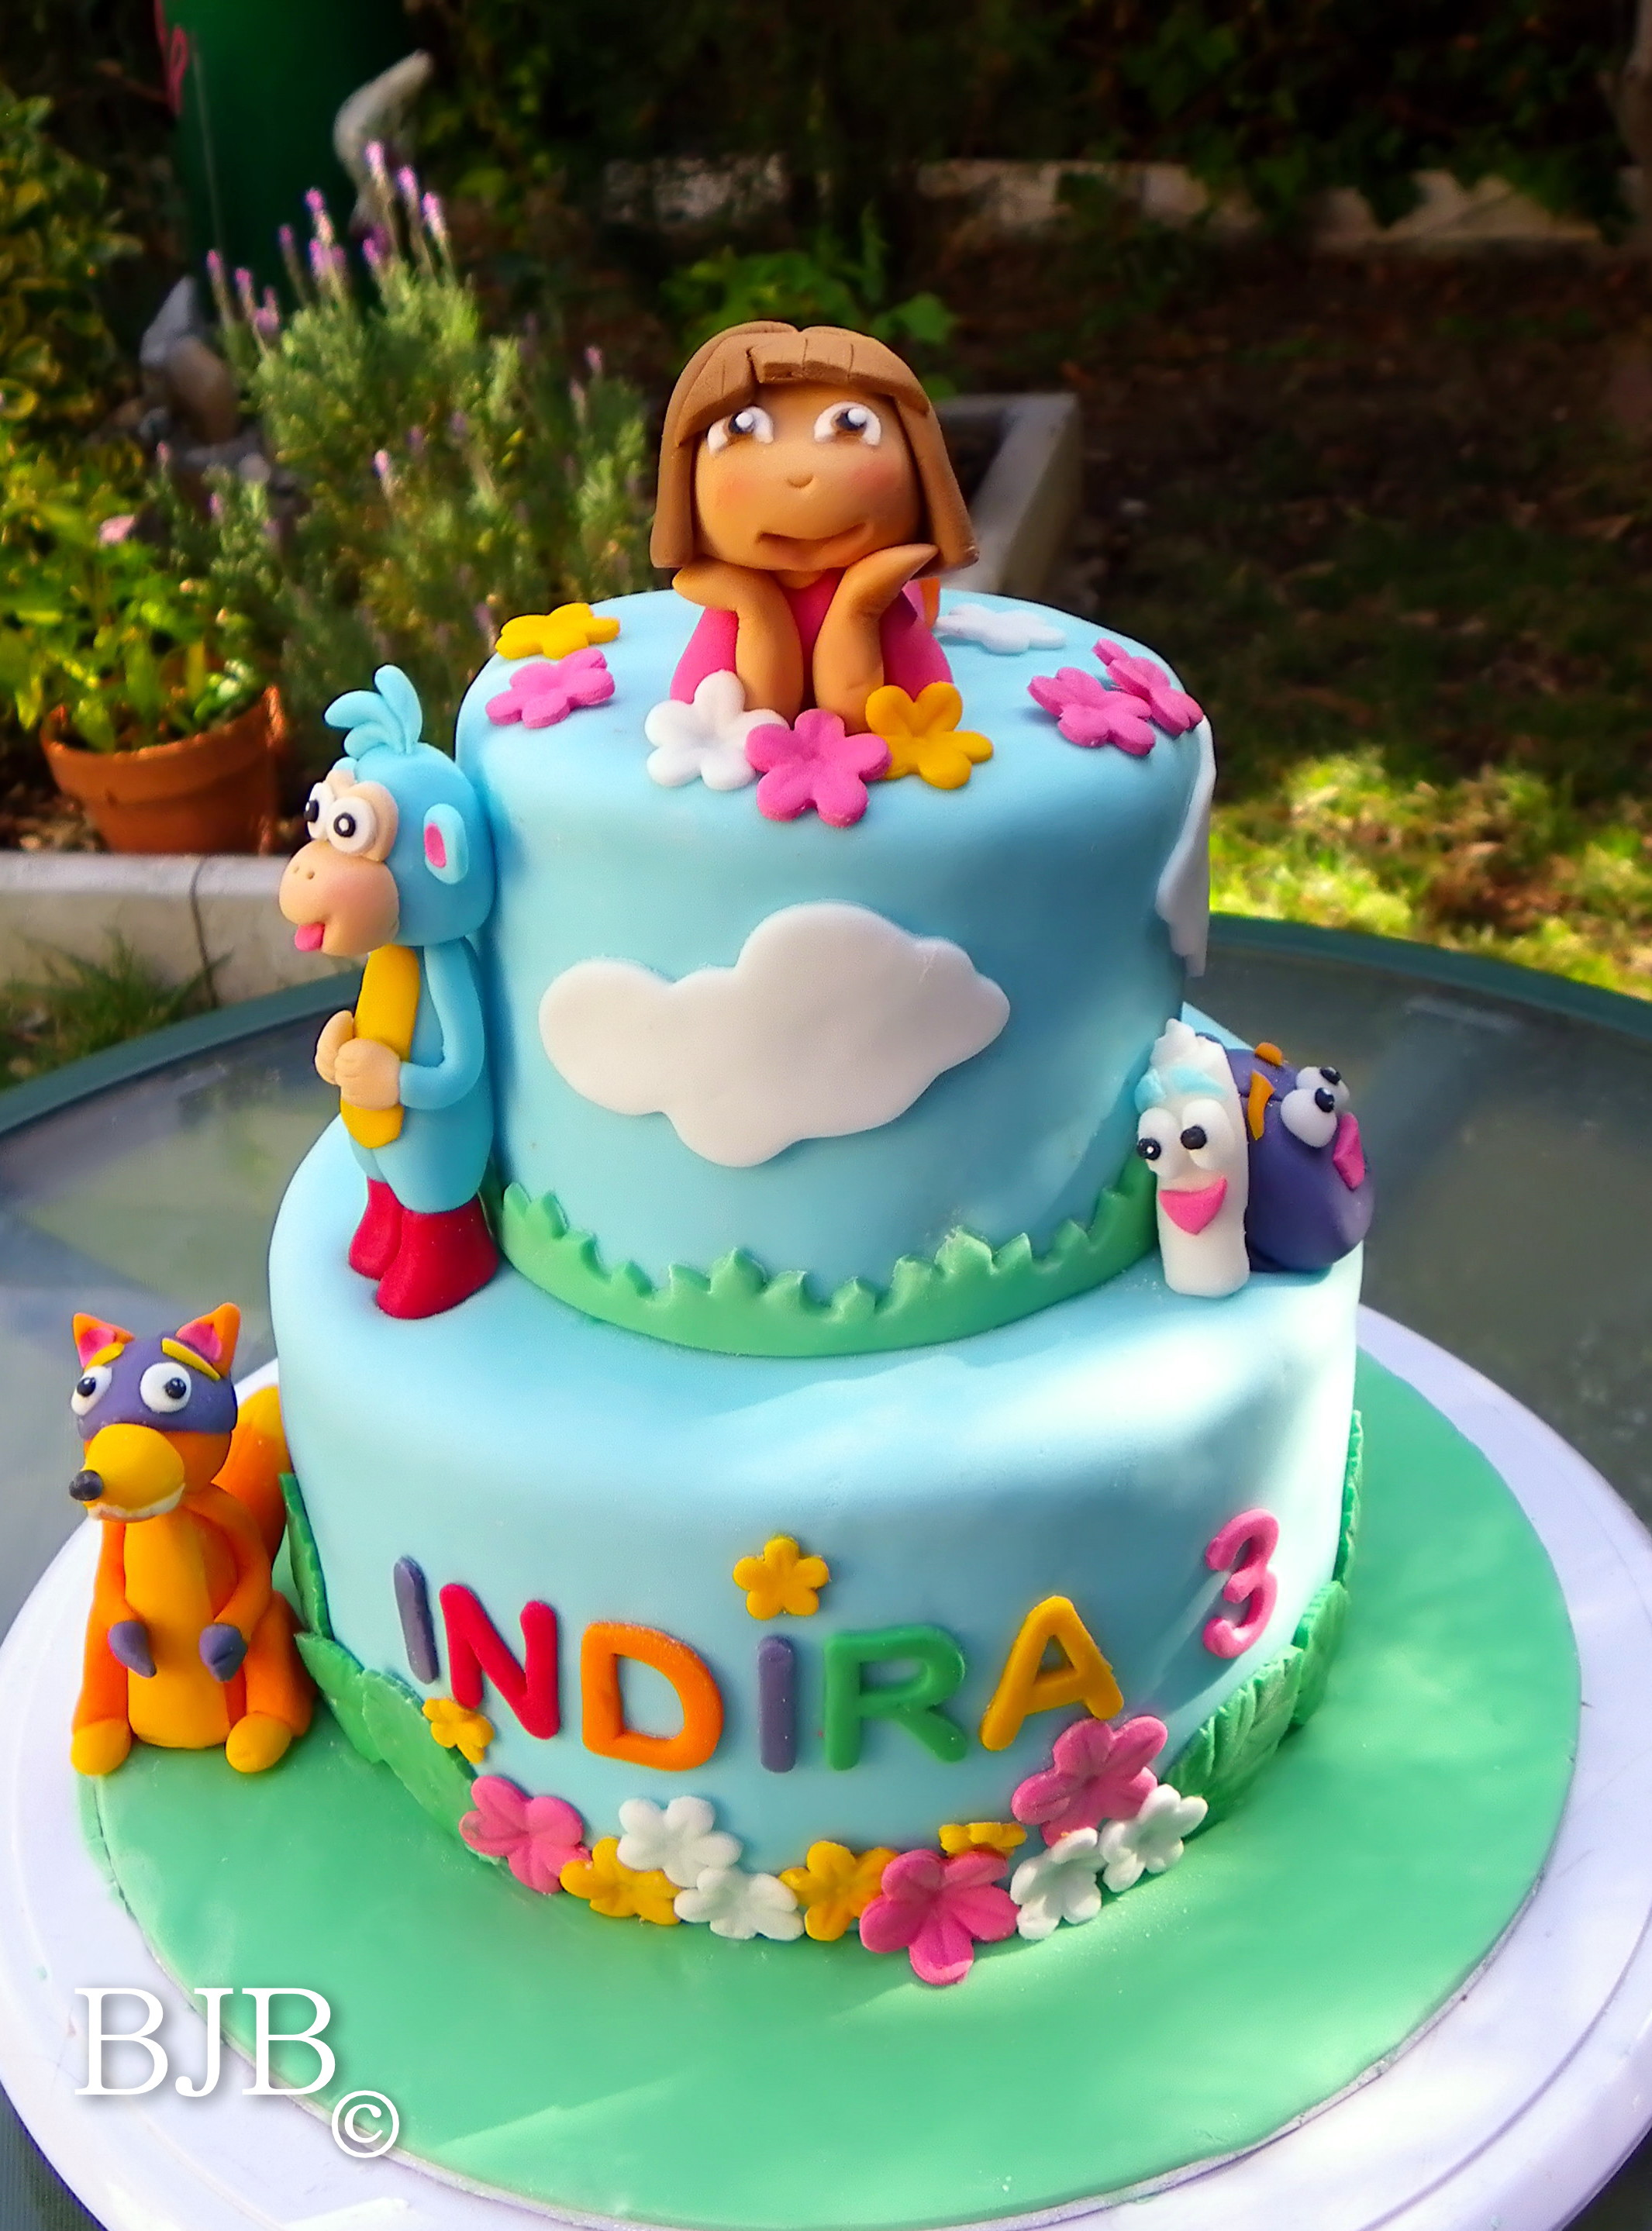 A Dora the Explorer Cake Blue jellybeans